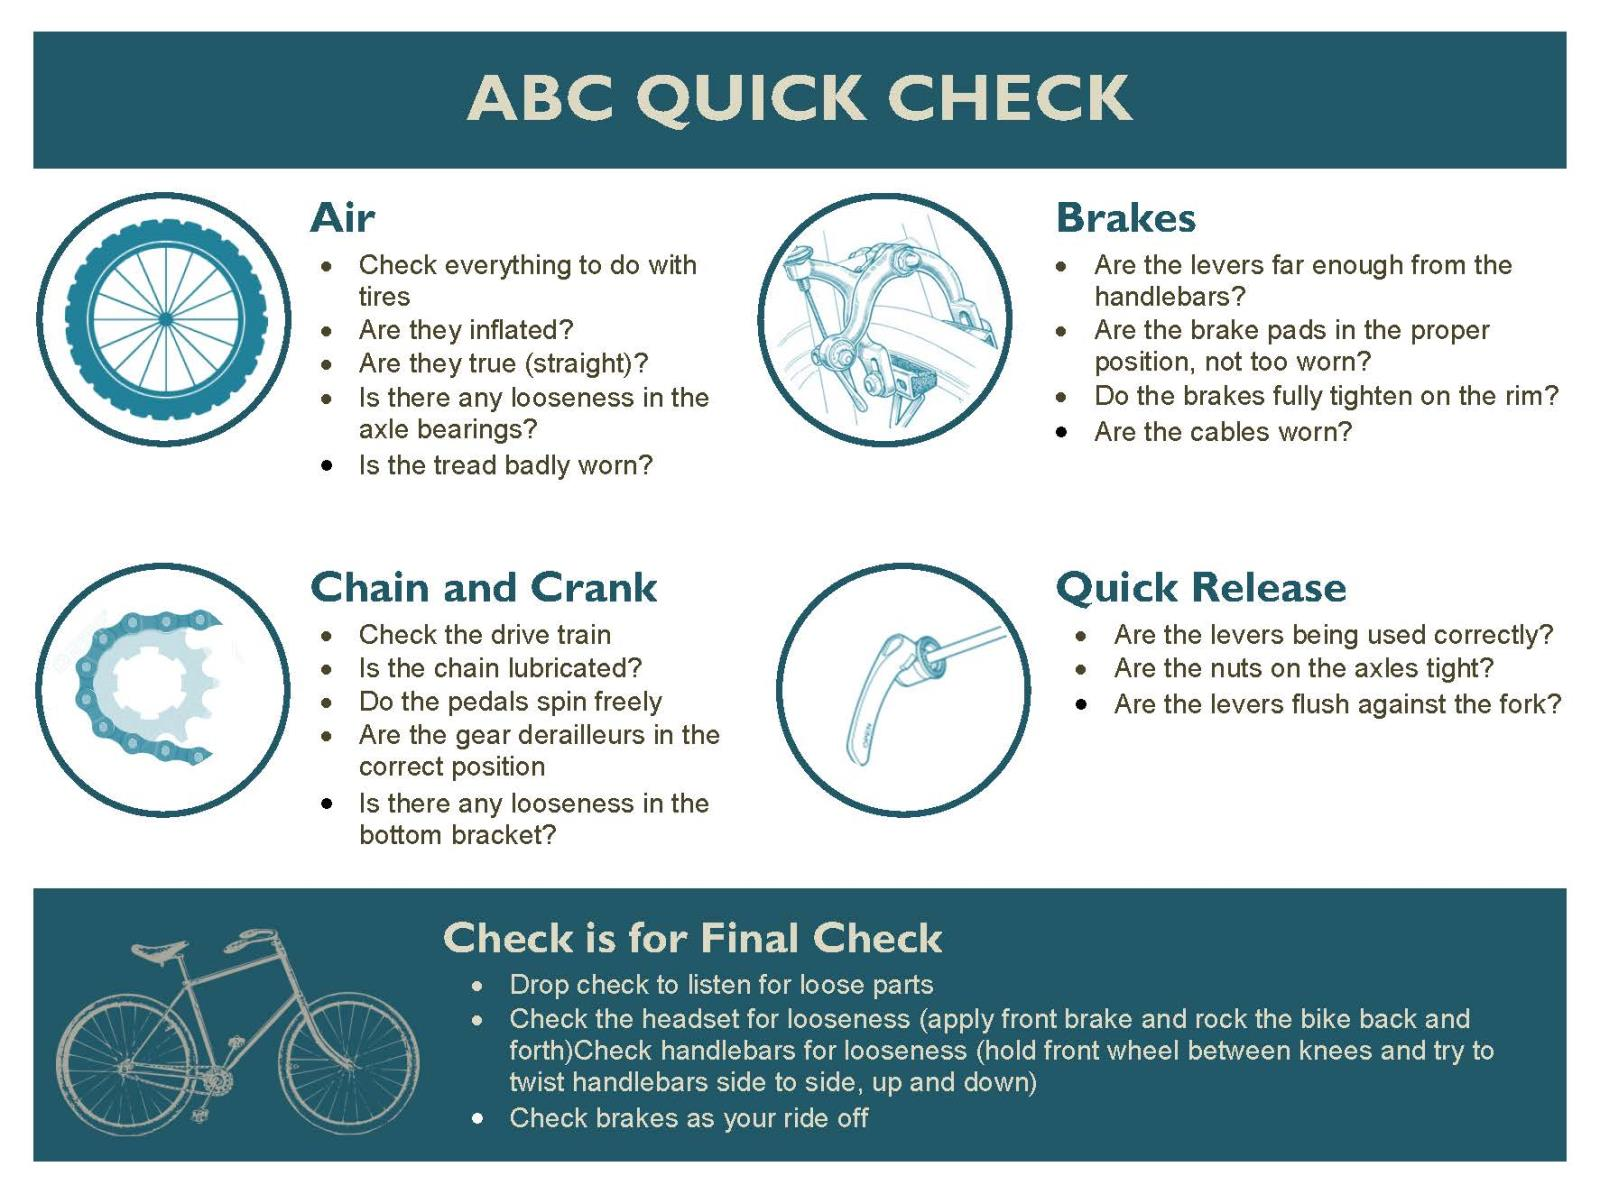 ABC QUICK CHECK2